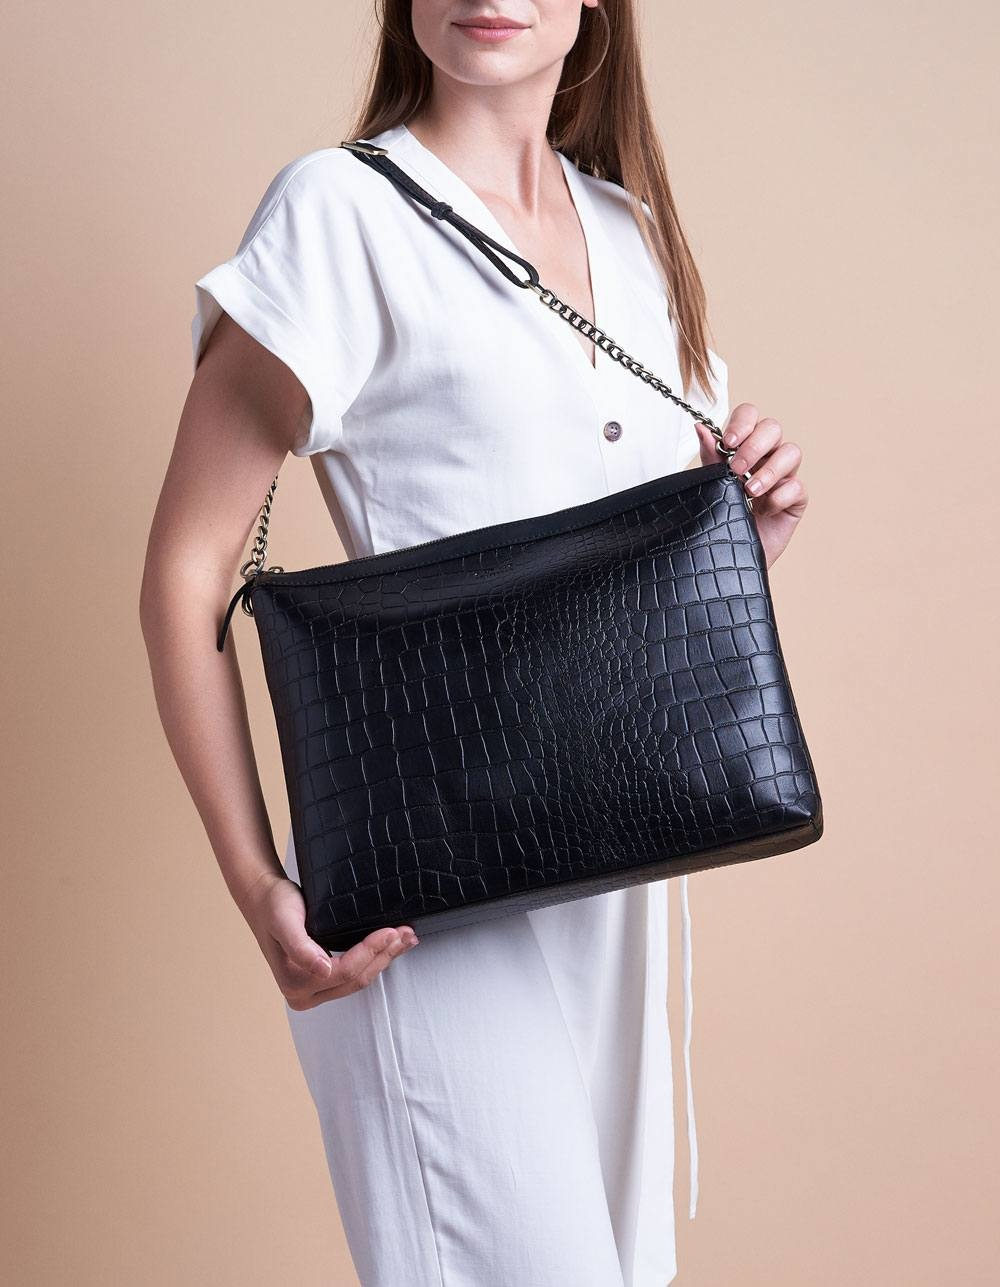 Scarlet Bag - Black Croco Classic Leather-8